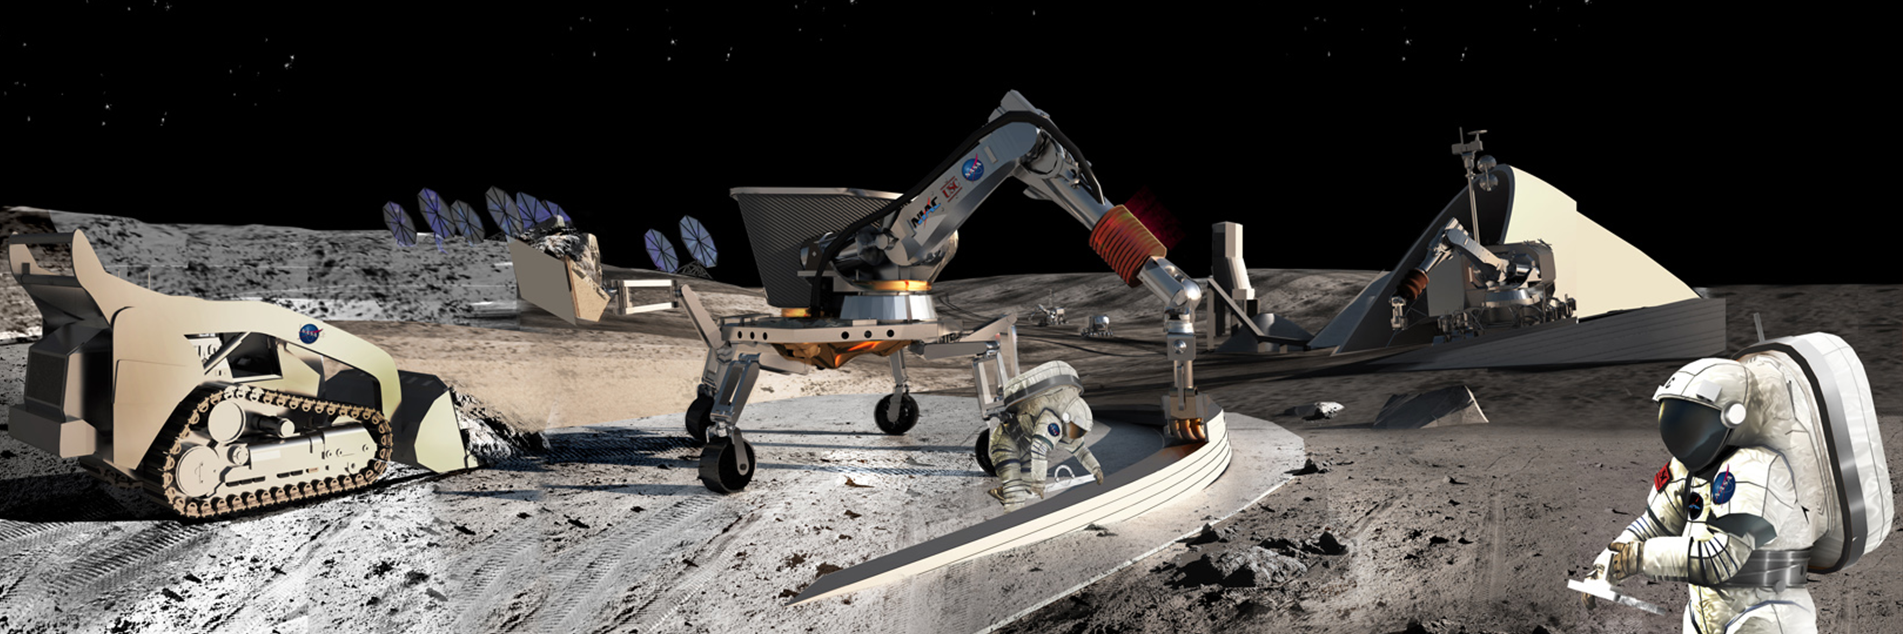 Lunar Mining. Credits: Contour Crafting and University of Southern California.